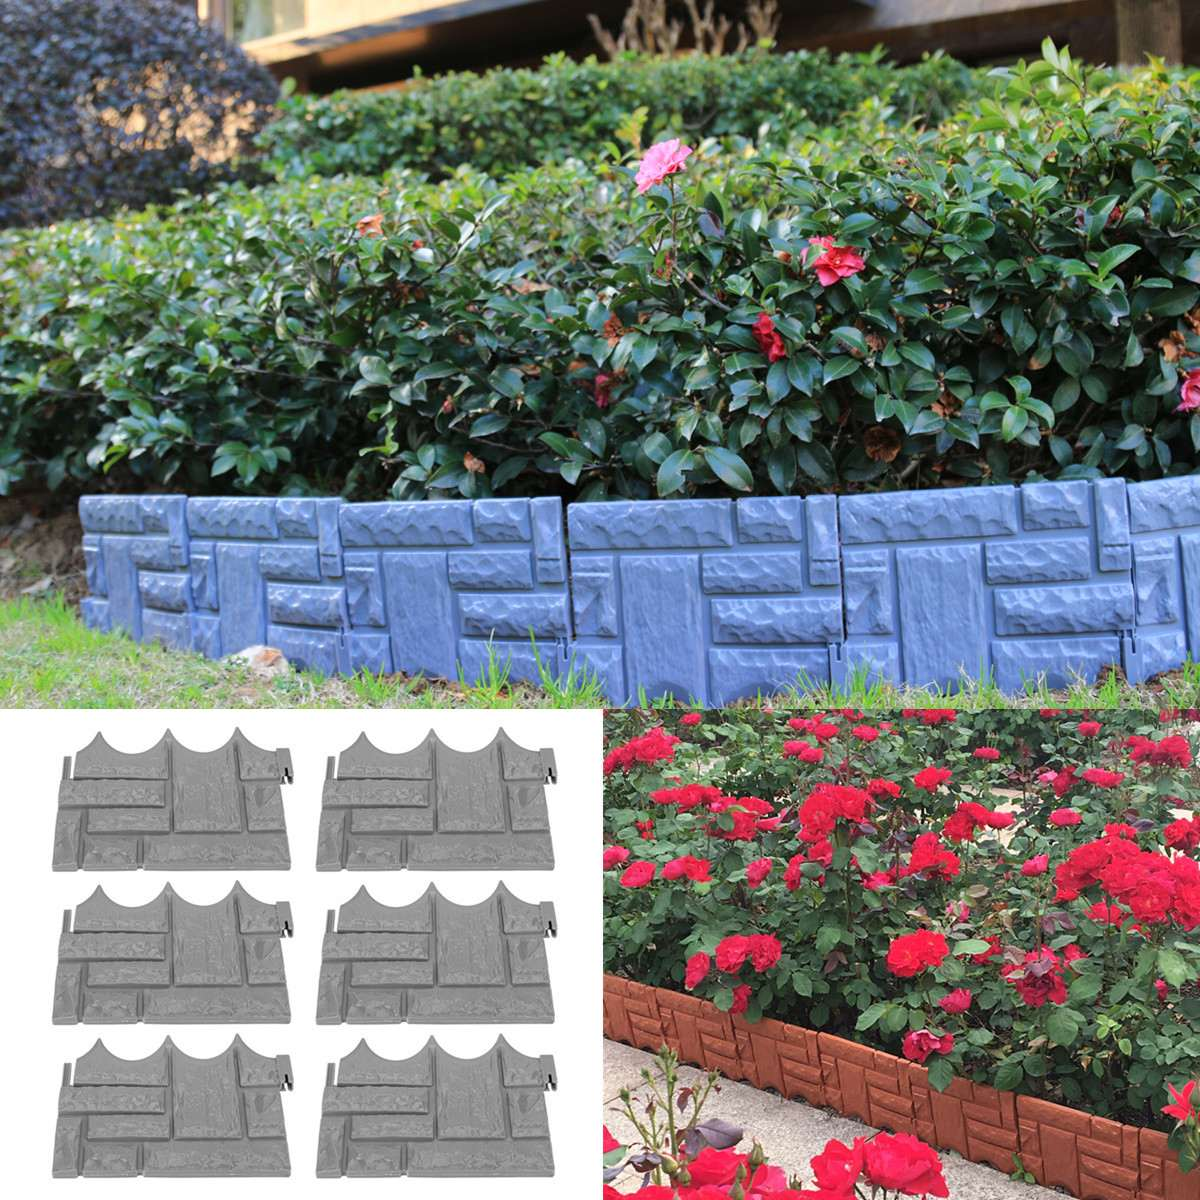 Pcs Decorative Garden Fence Outdoor